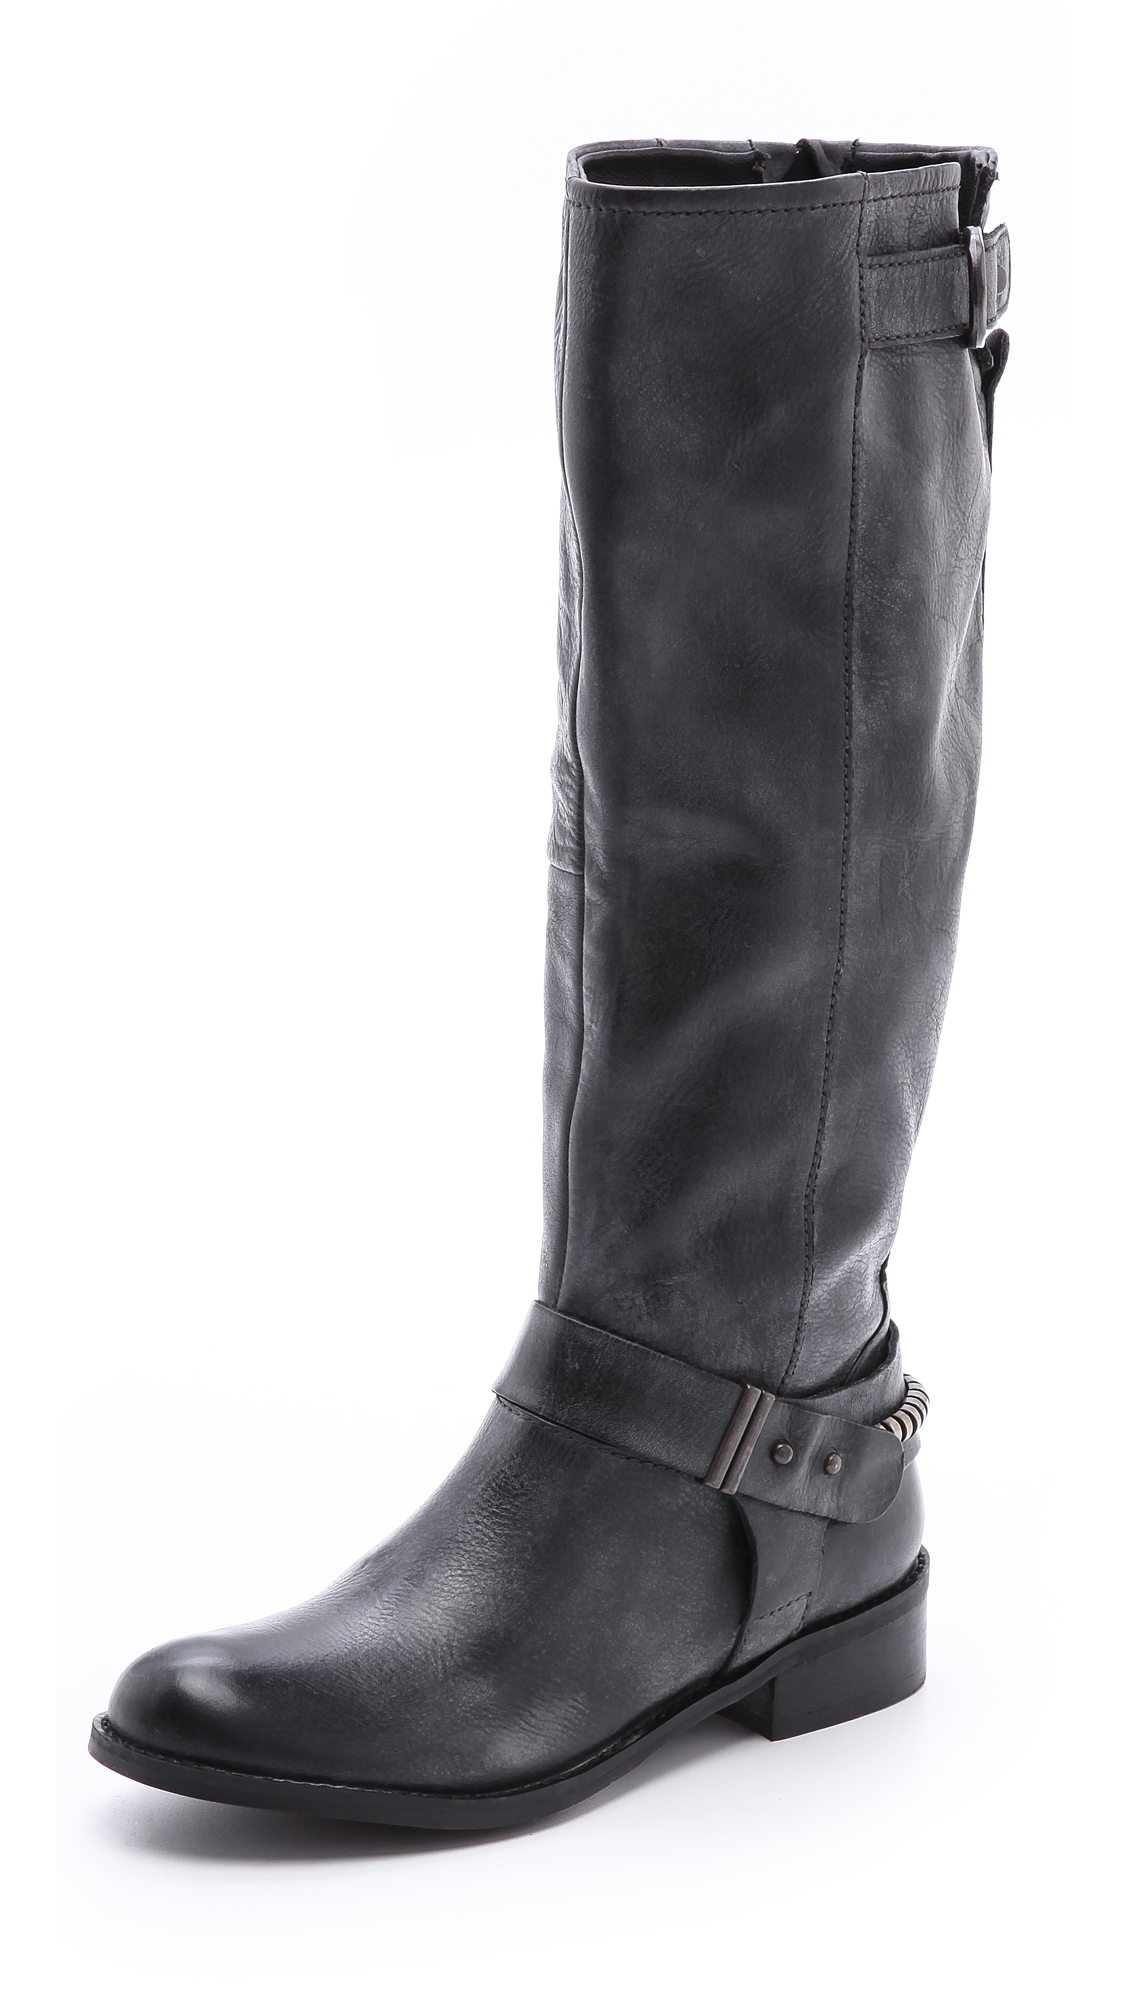 steven by steve madden ryley flat boots in black lyst